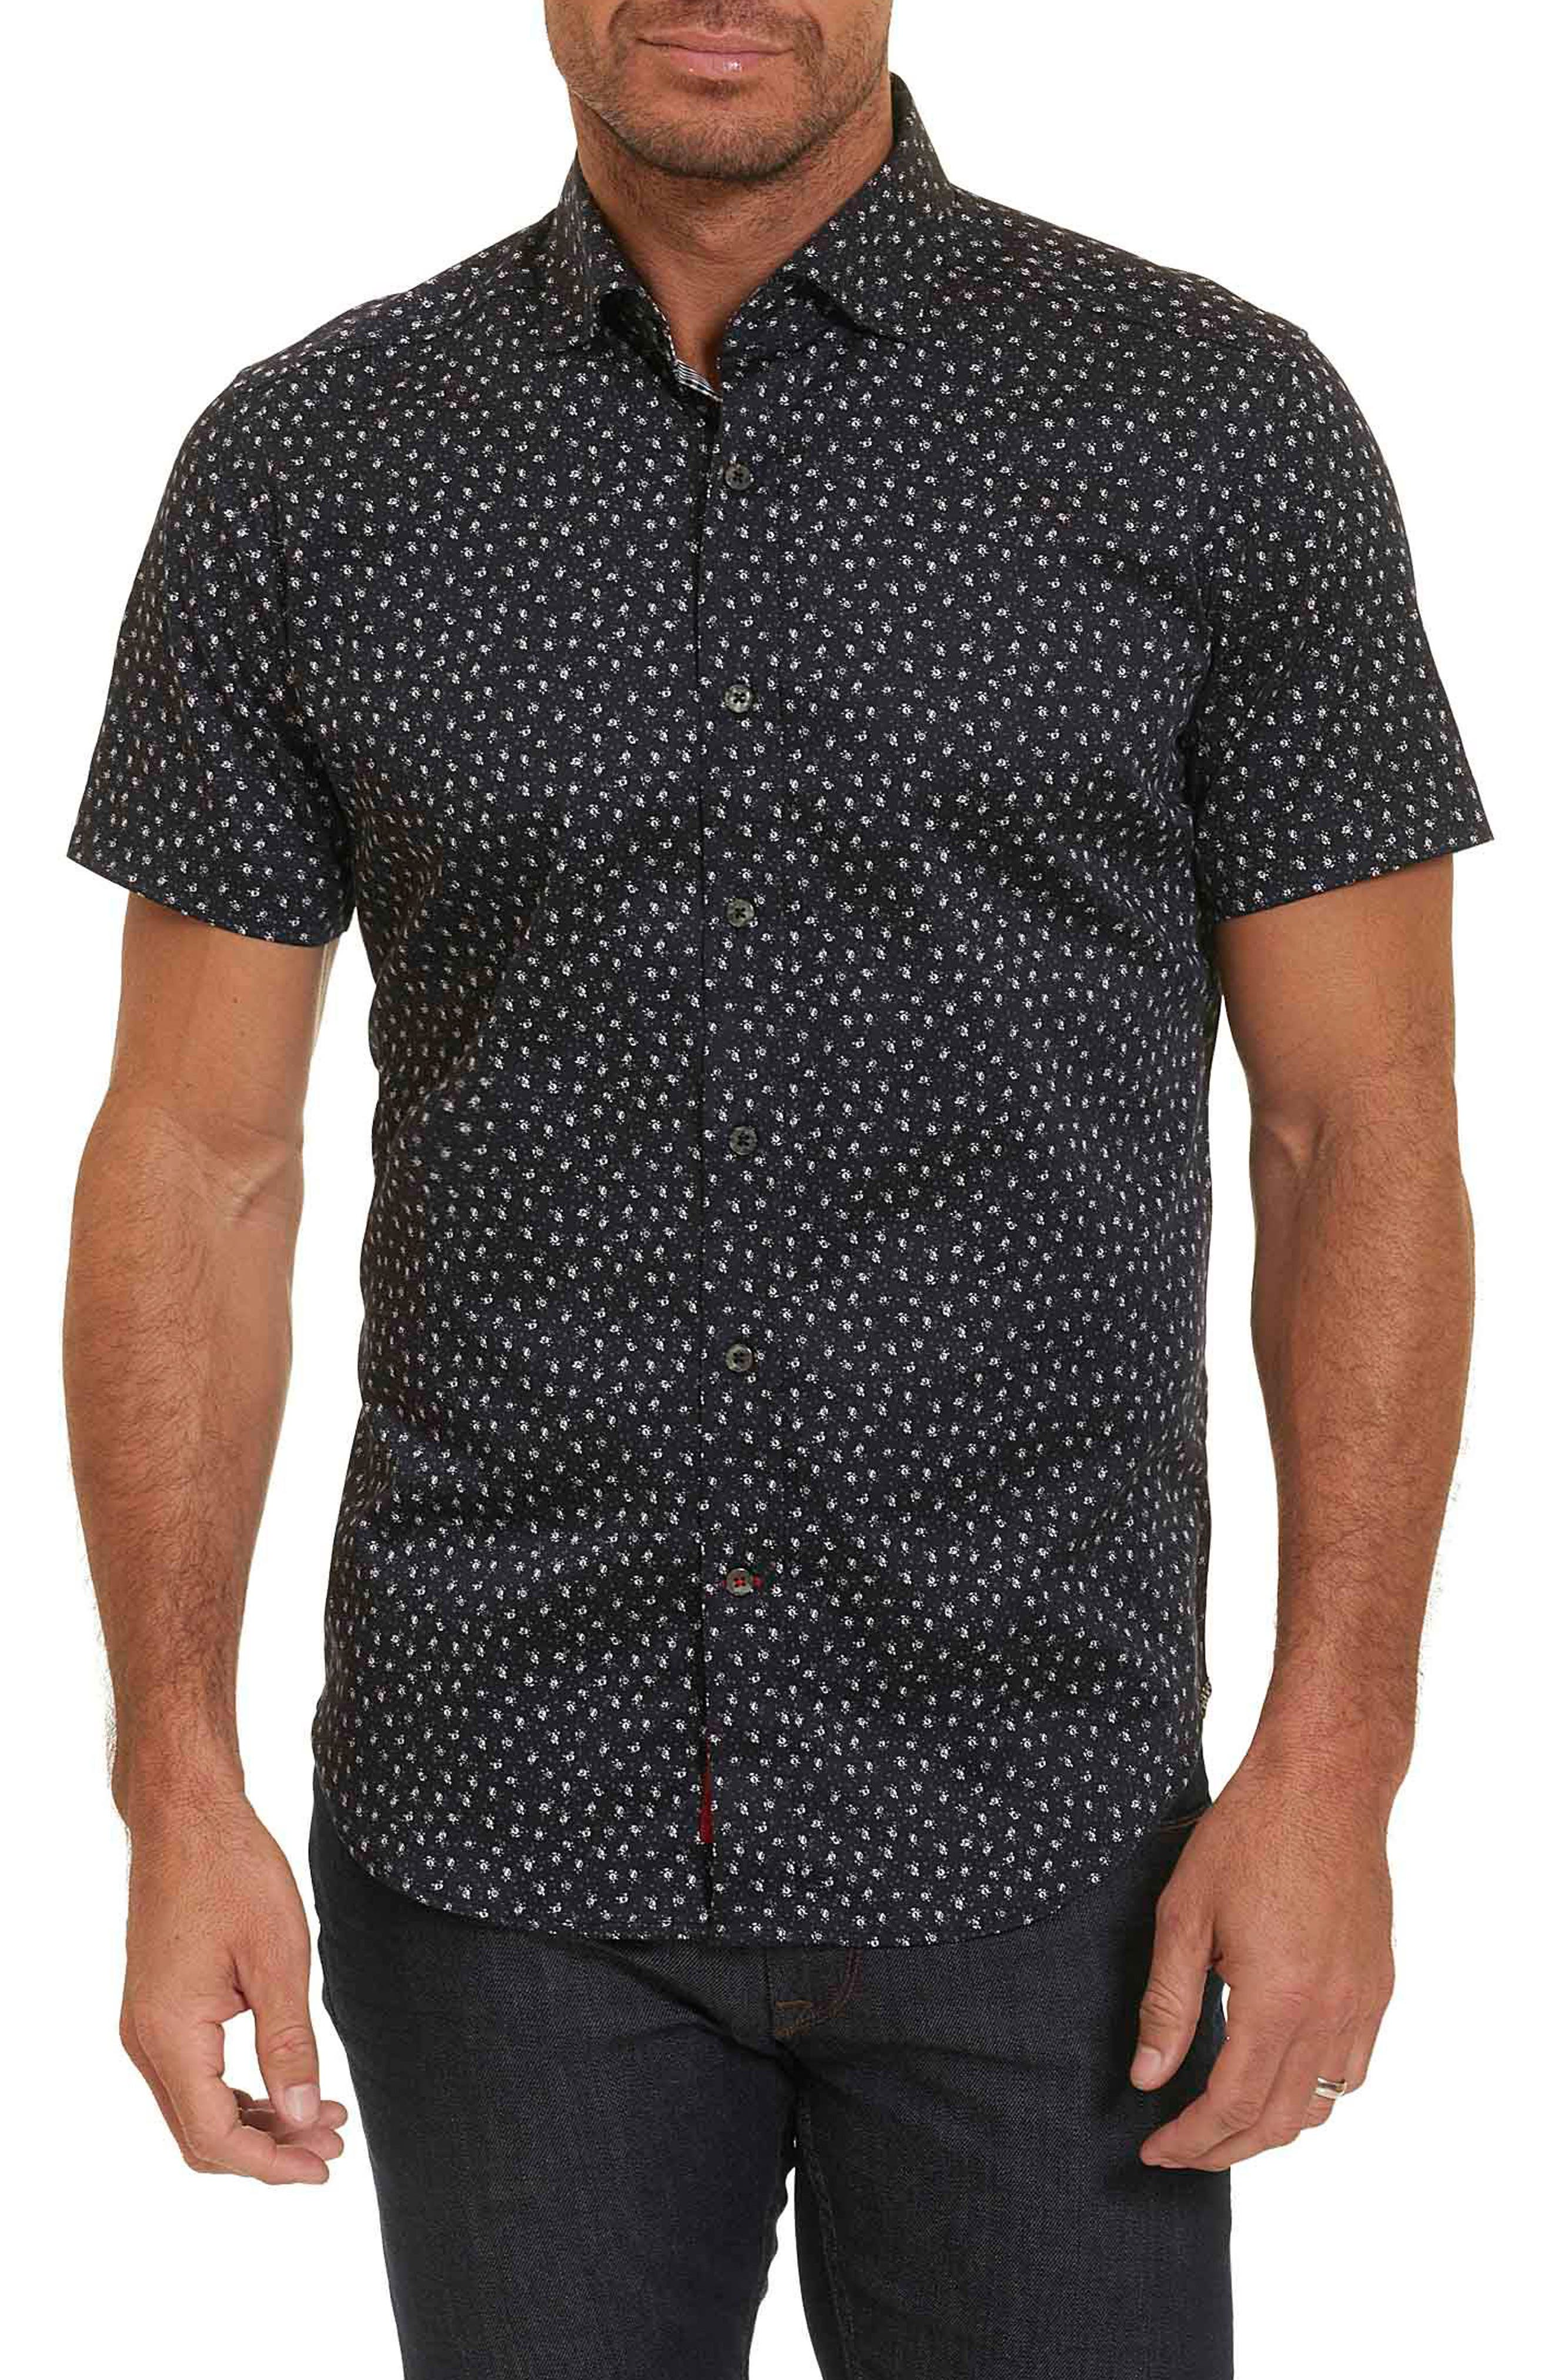 Miki Tailored Fit Print Short Sleeve Sport Shirt,                             Main thumbnail 1, color,                             001